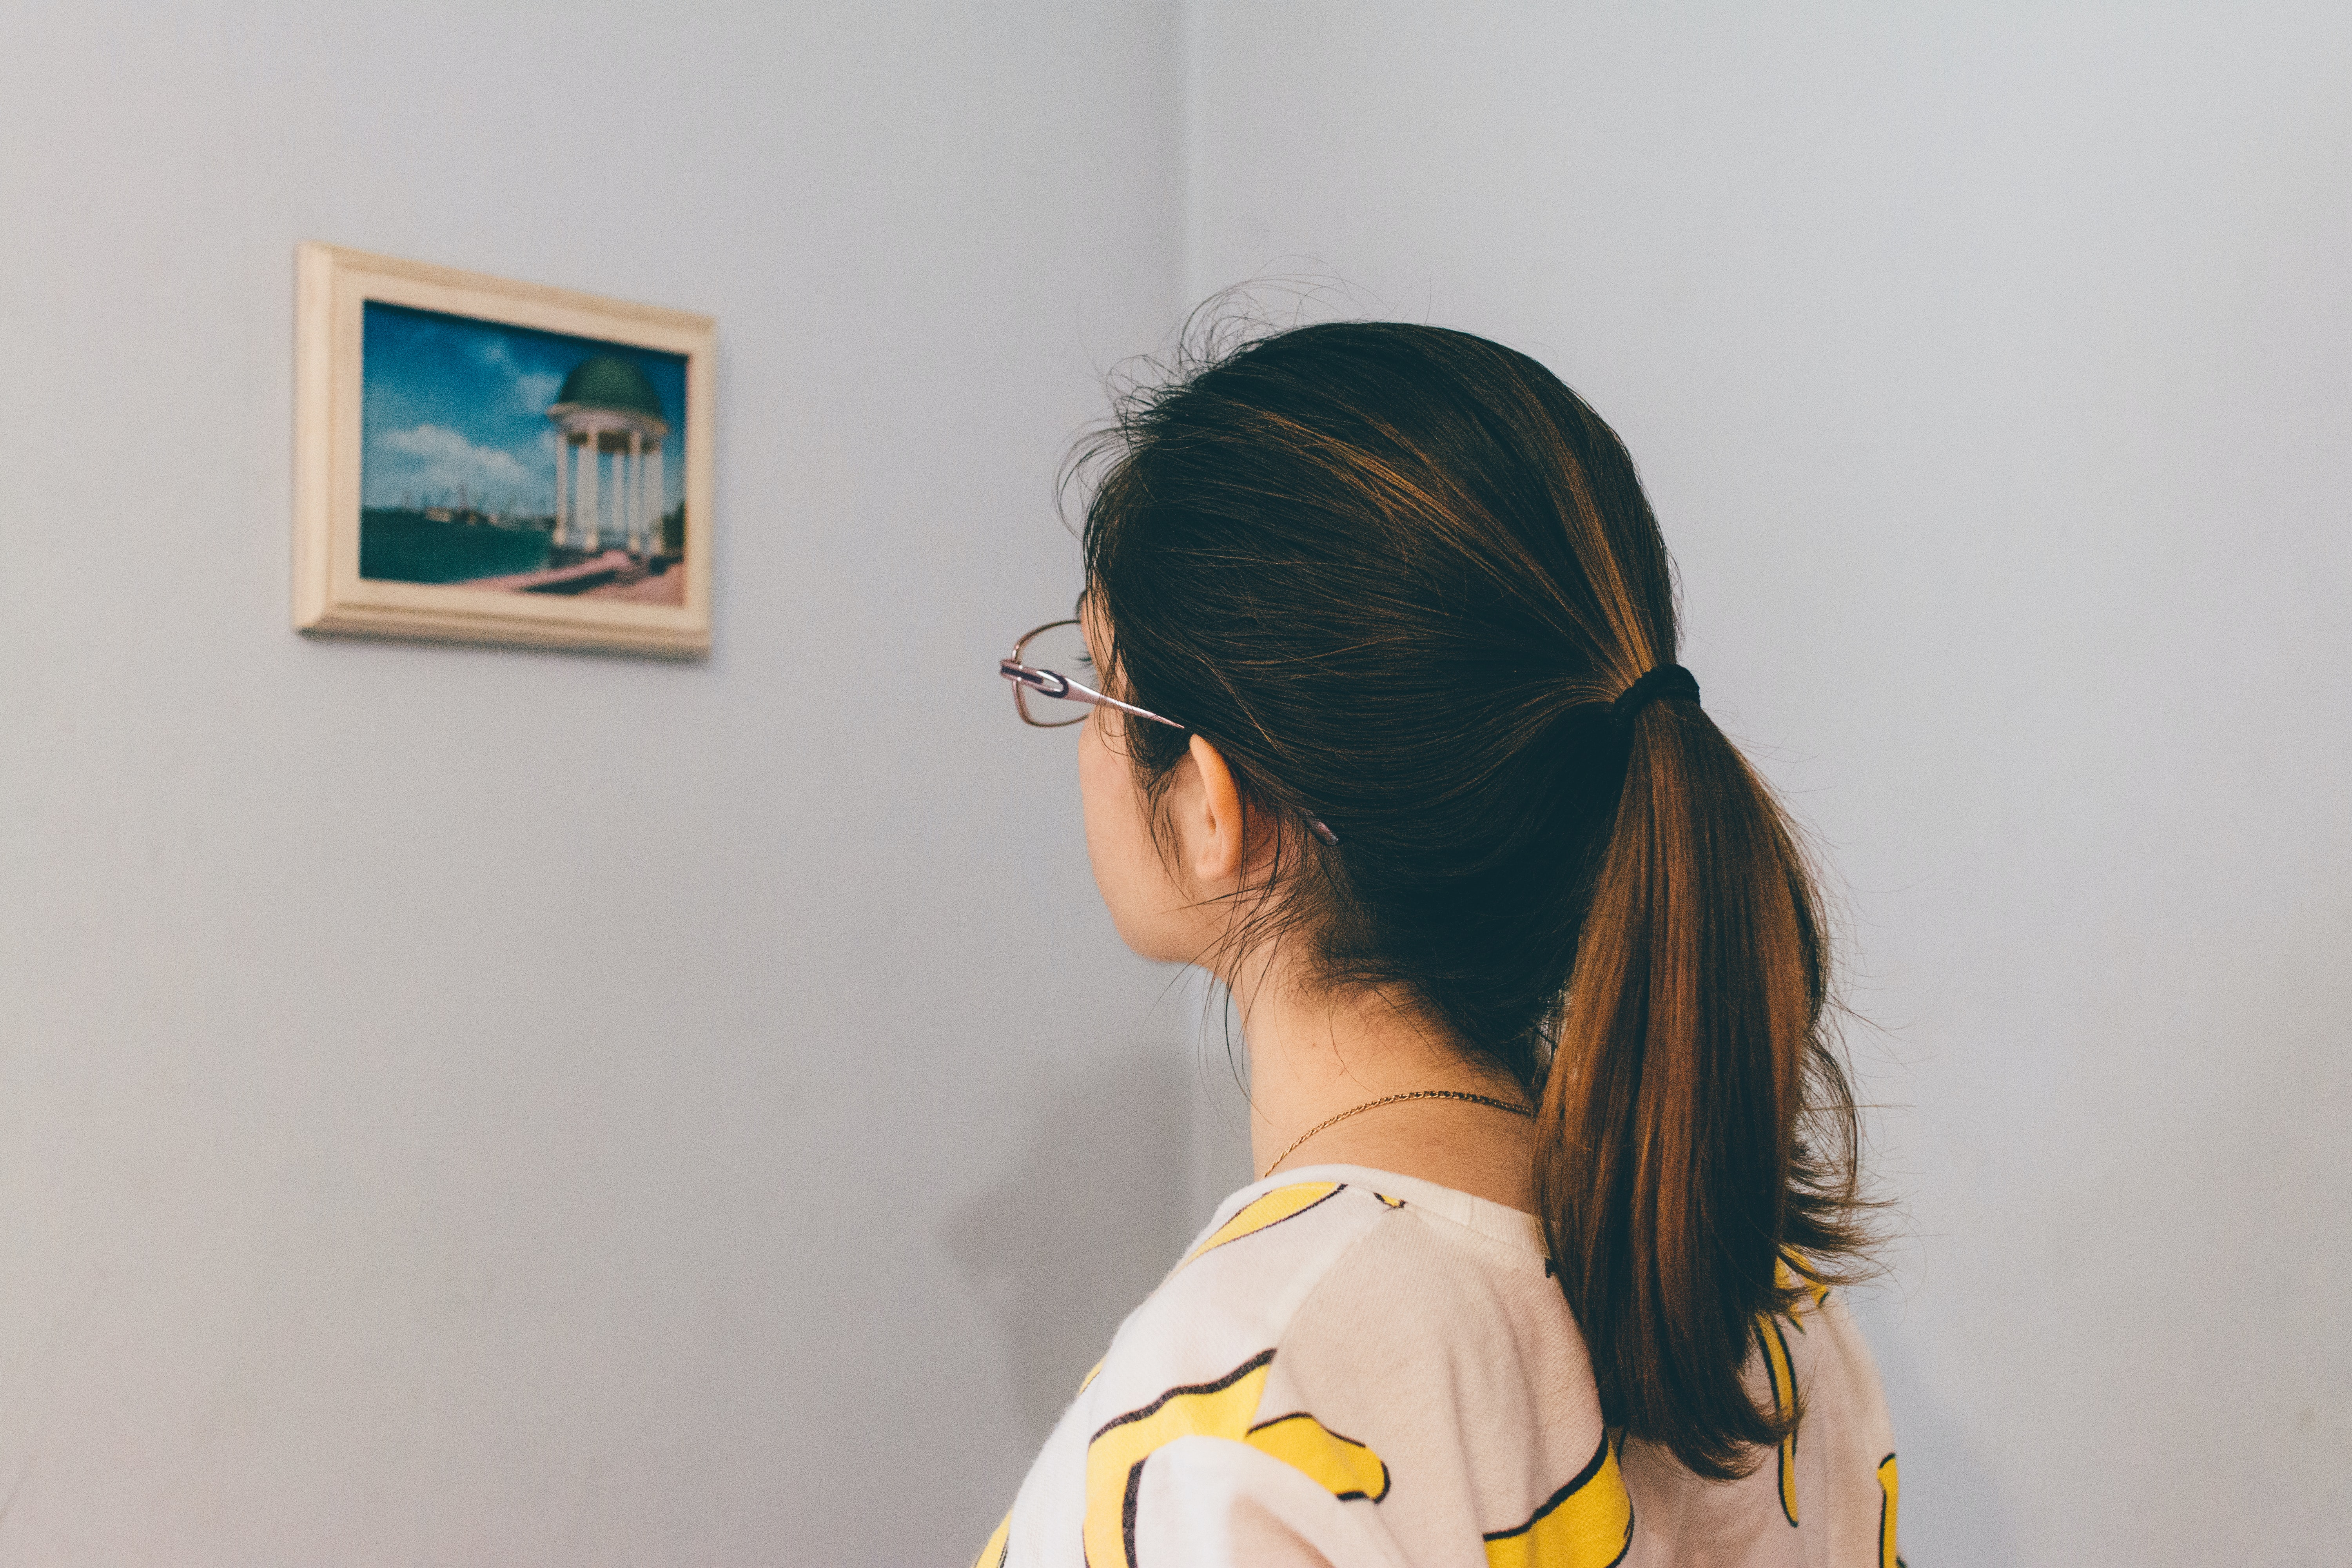 Young woman with glasses from behind looking at small framed artwork on white wall